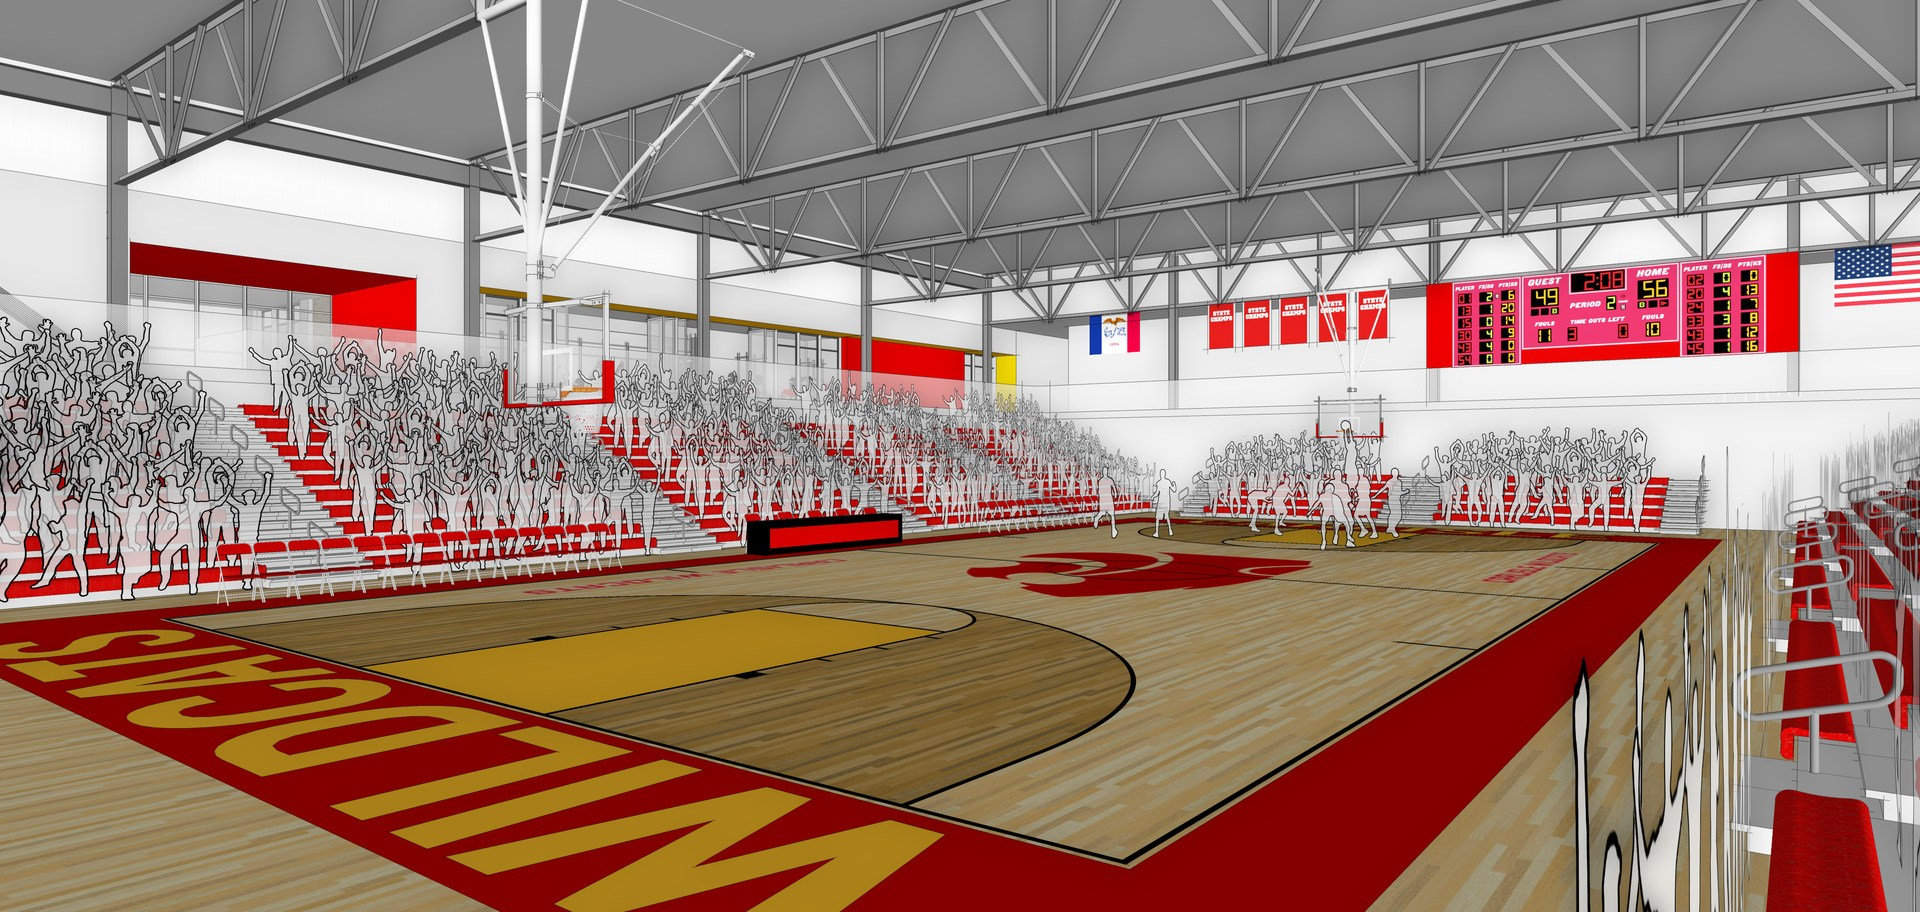 Rendering of Indoor Activities Center - Basketball Court